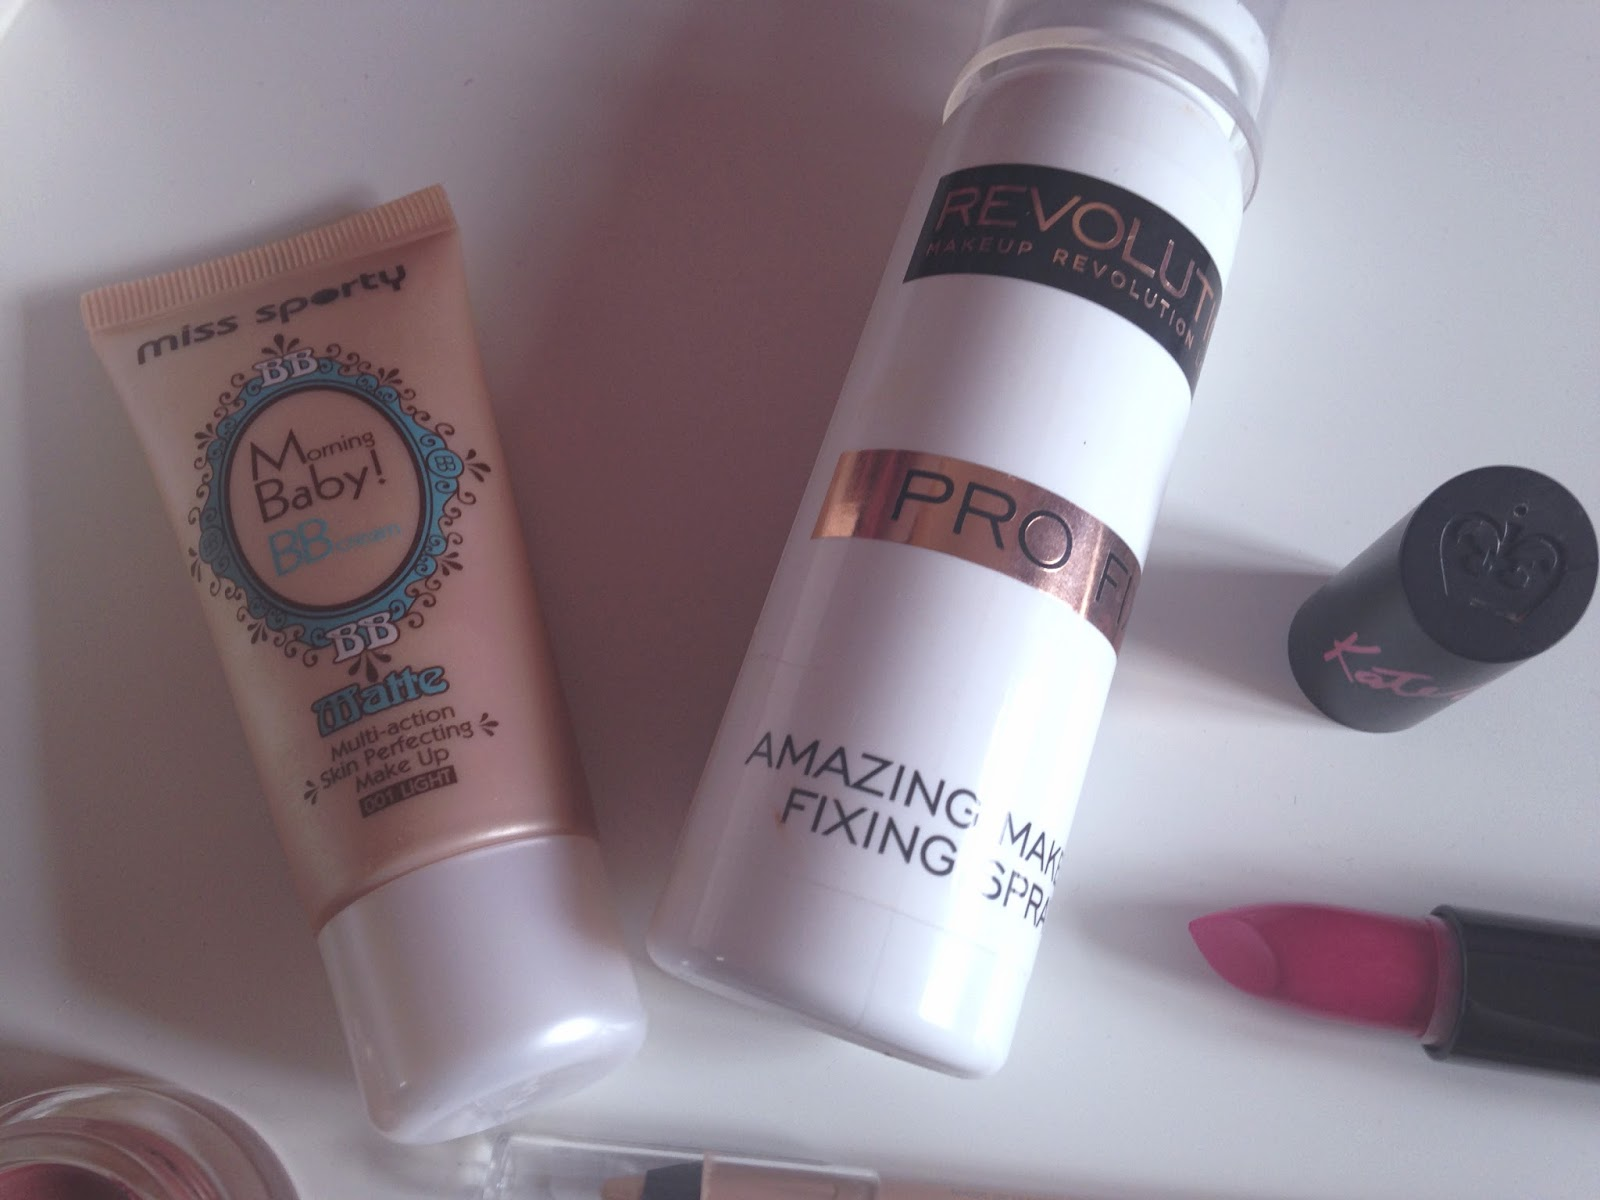 Miss Sporty Matte BB Cream Makeup Revolution Amazing Makeup Fixing Spray